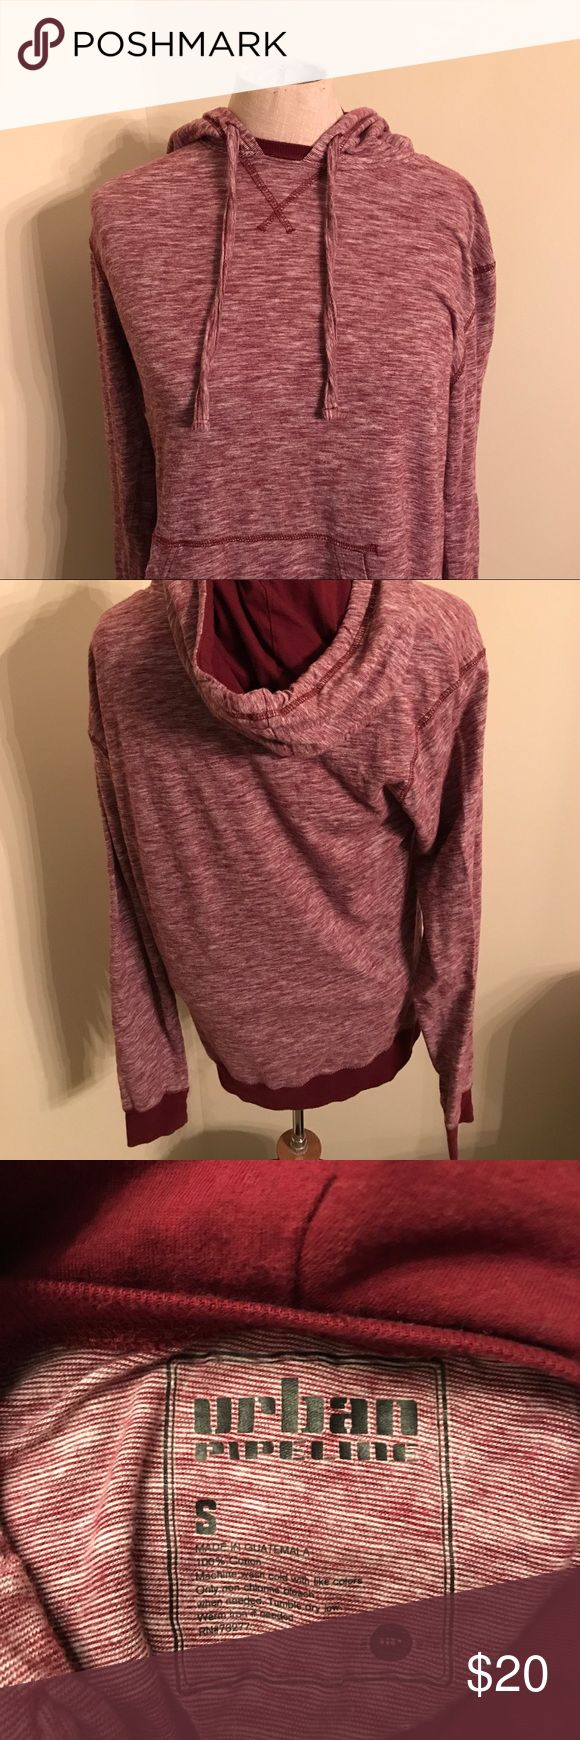 Small Men's Urban Pipeline Burgundy Lined Hoodie Men's Urban Pipeline Lined Burgundy Hoodie.   Condition: Very good condition with no holes and no imperfections.   Size: small  Chest: 17 1/2 Inches  Length: 25 Inches  Sleeve:  25 Inches  Shoulder: 17 Inches Urban Pipeline Sweaters Zip Up